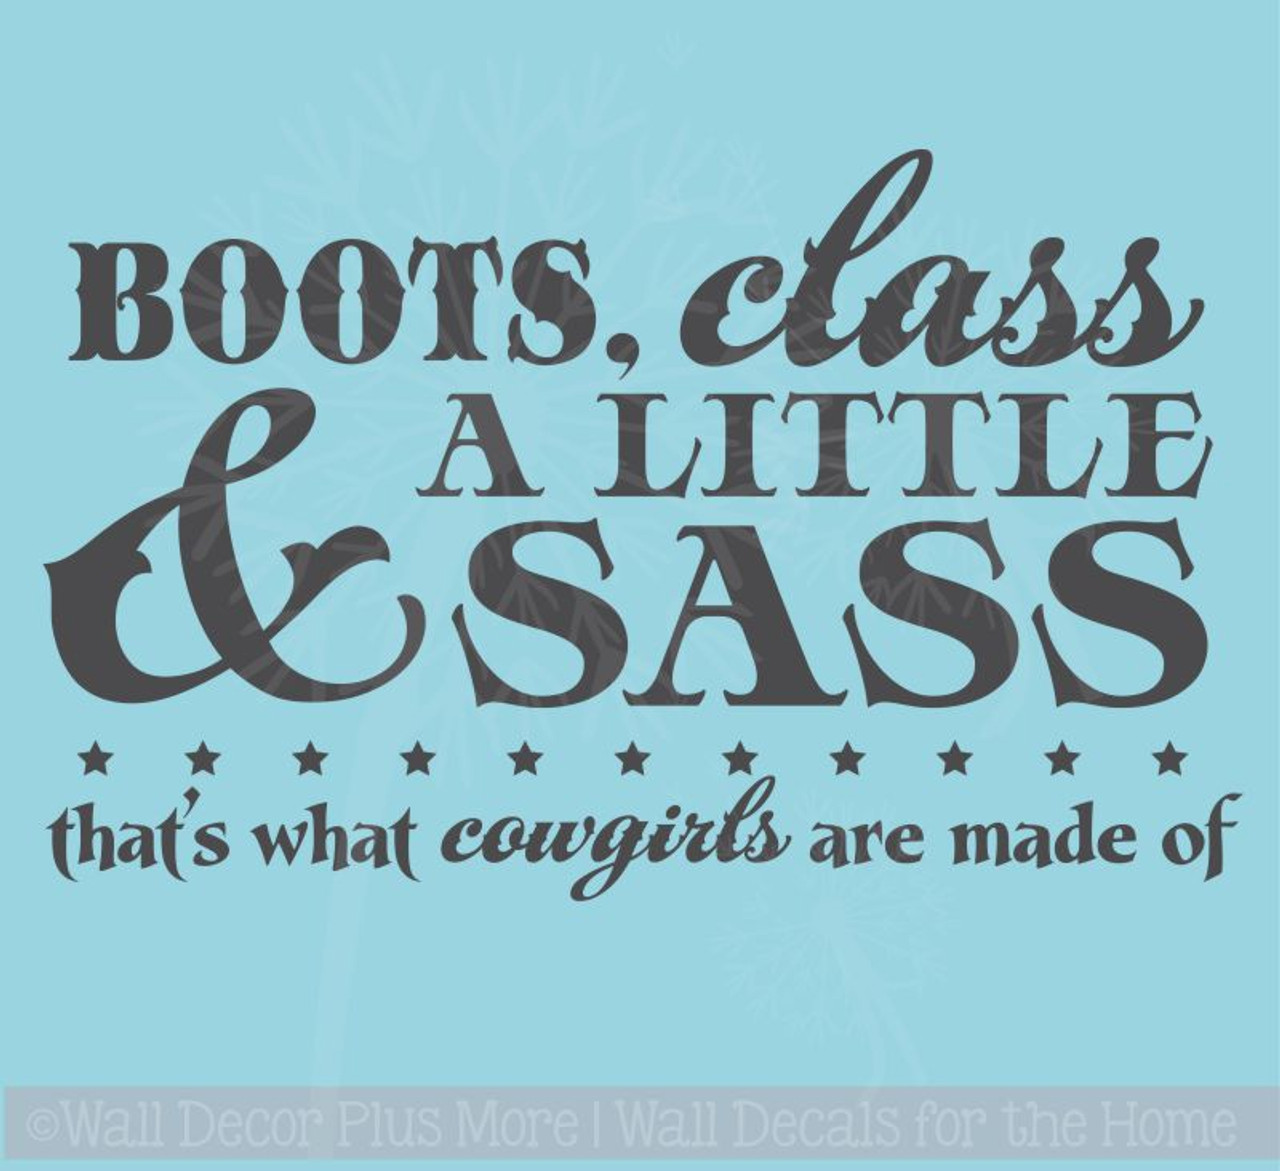 Boots Quotes Fascinating Boots Class A Little Sass That's What Cowgirls Western Quotes Wall